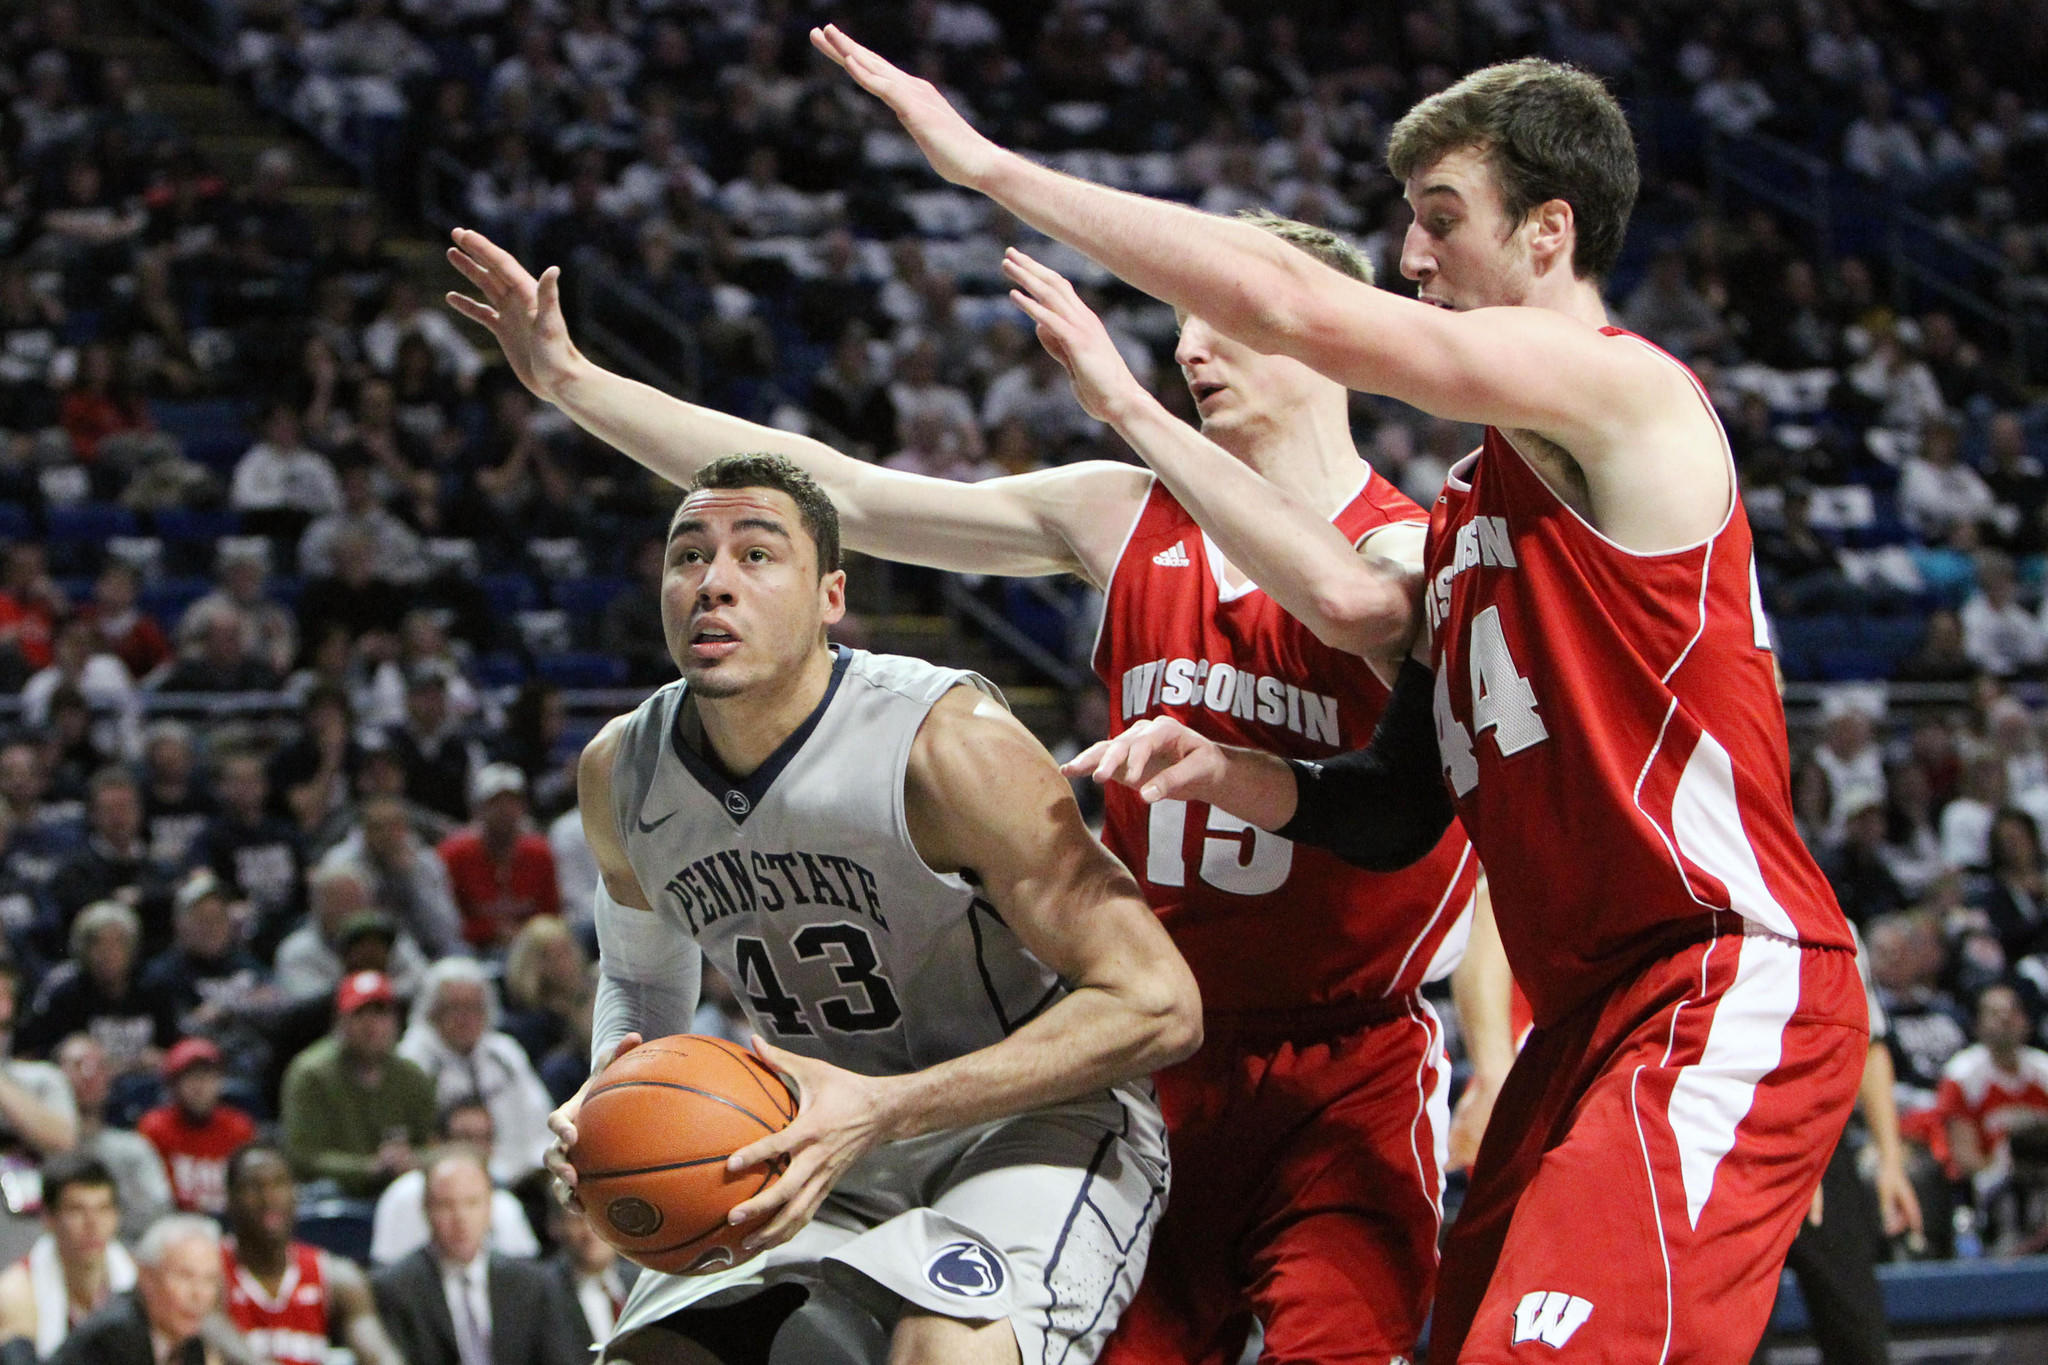 Penn State forward Ross Travis (43) prepares to shoot against the Wisconsin defense.